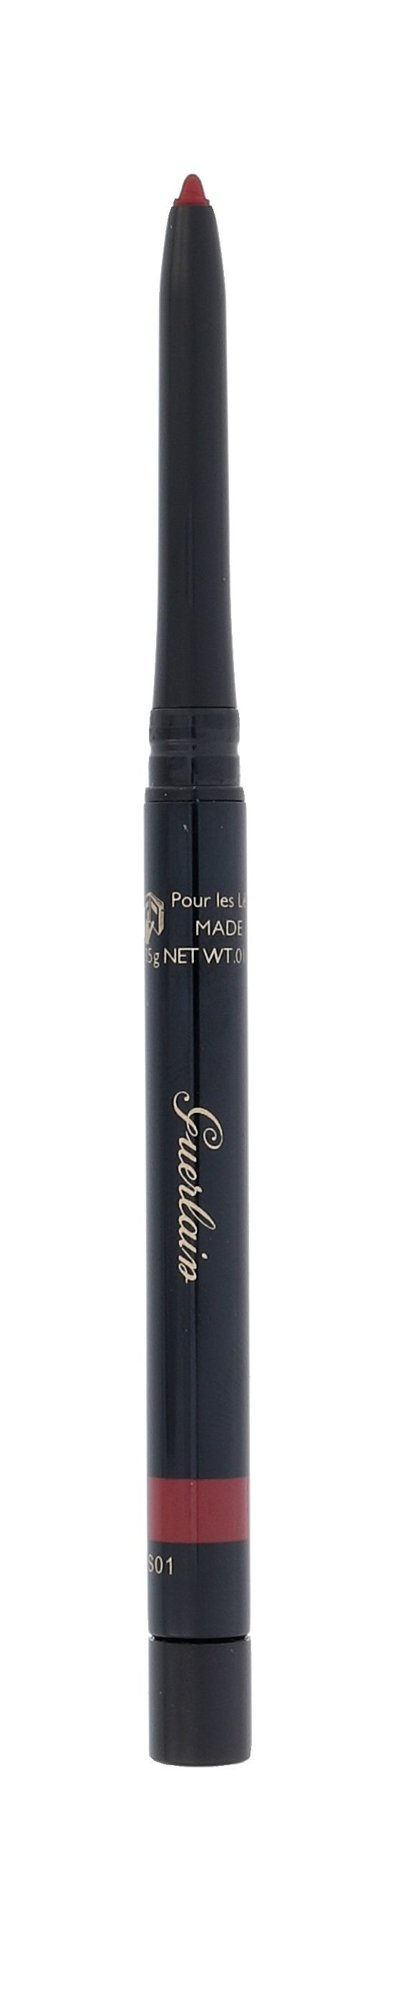 Guerlain The Lip Liner Cosmetic 0,35ml 25 Iris Noir